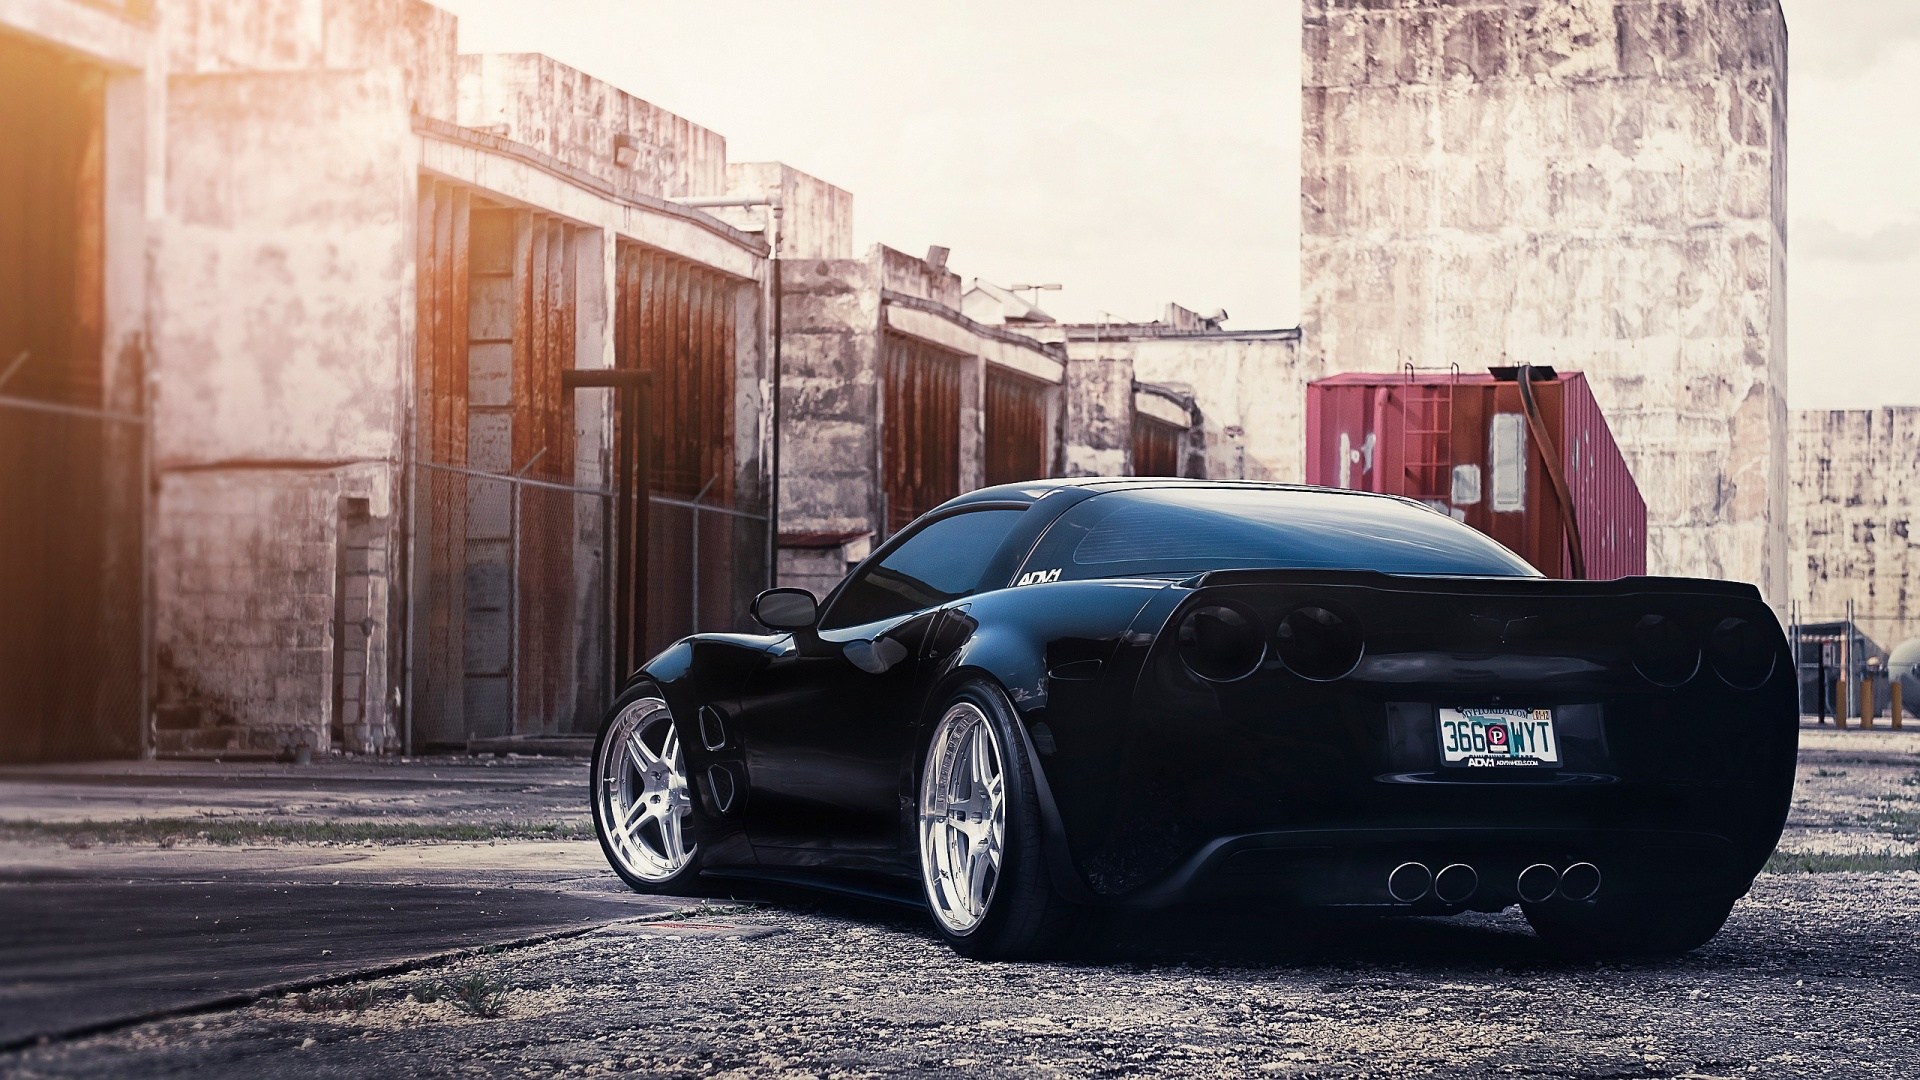 Corvette ADV1 Wheels Wallpaper in 1920x1080 HD Resolutions